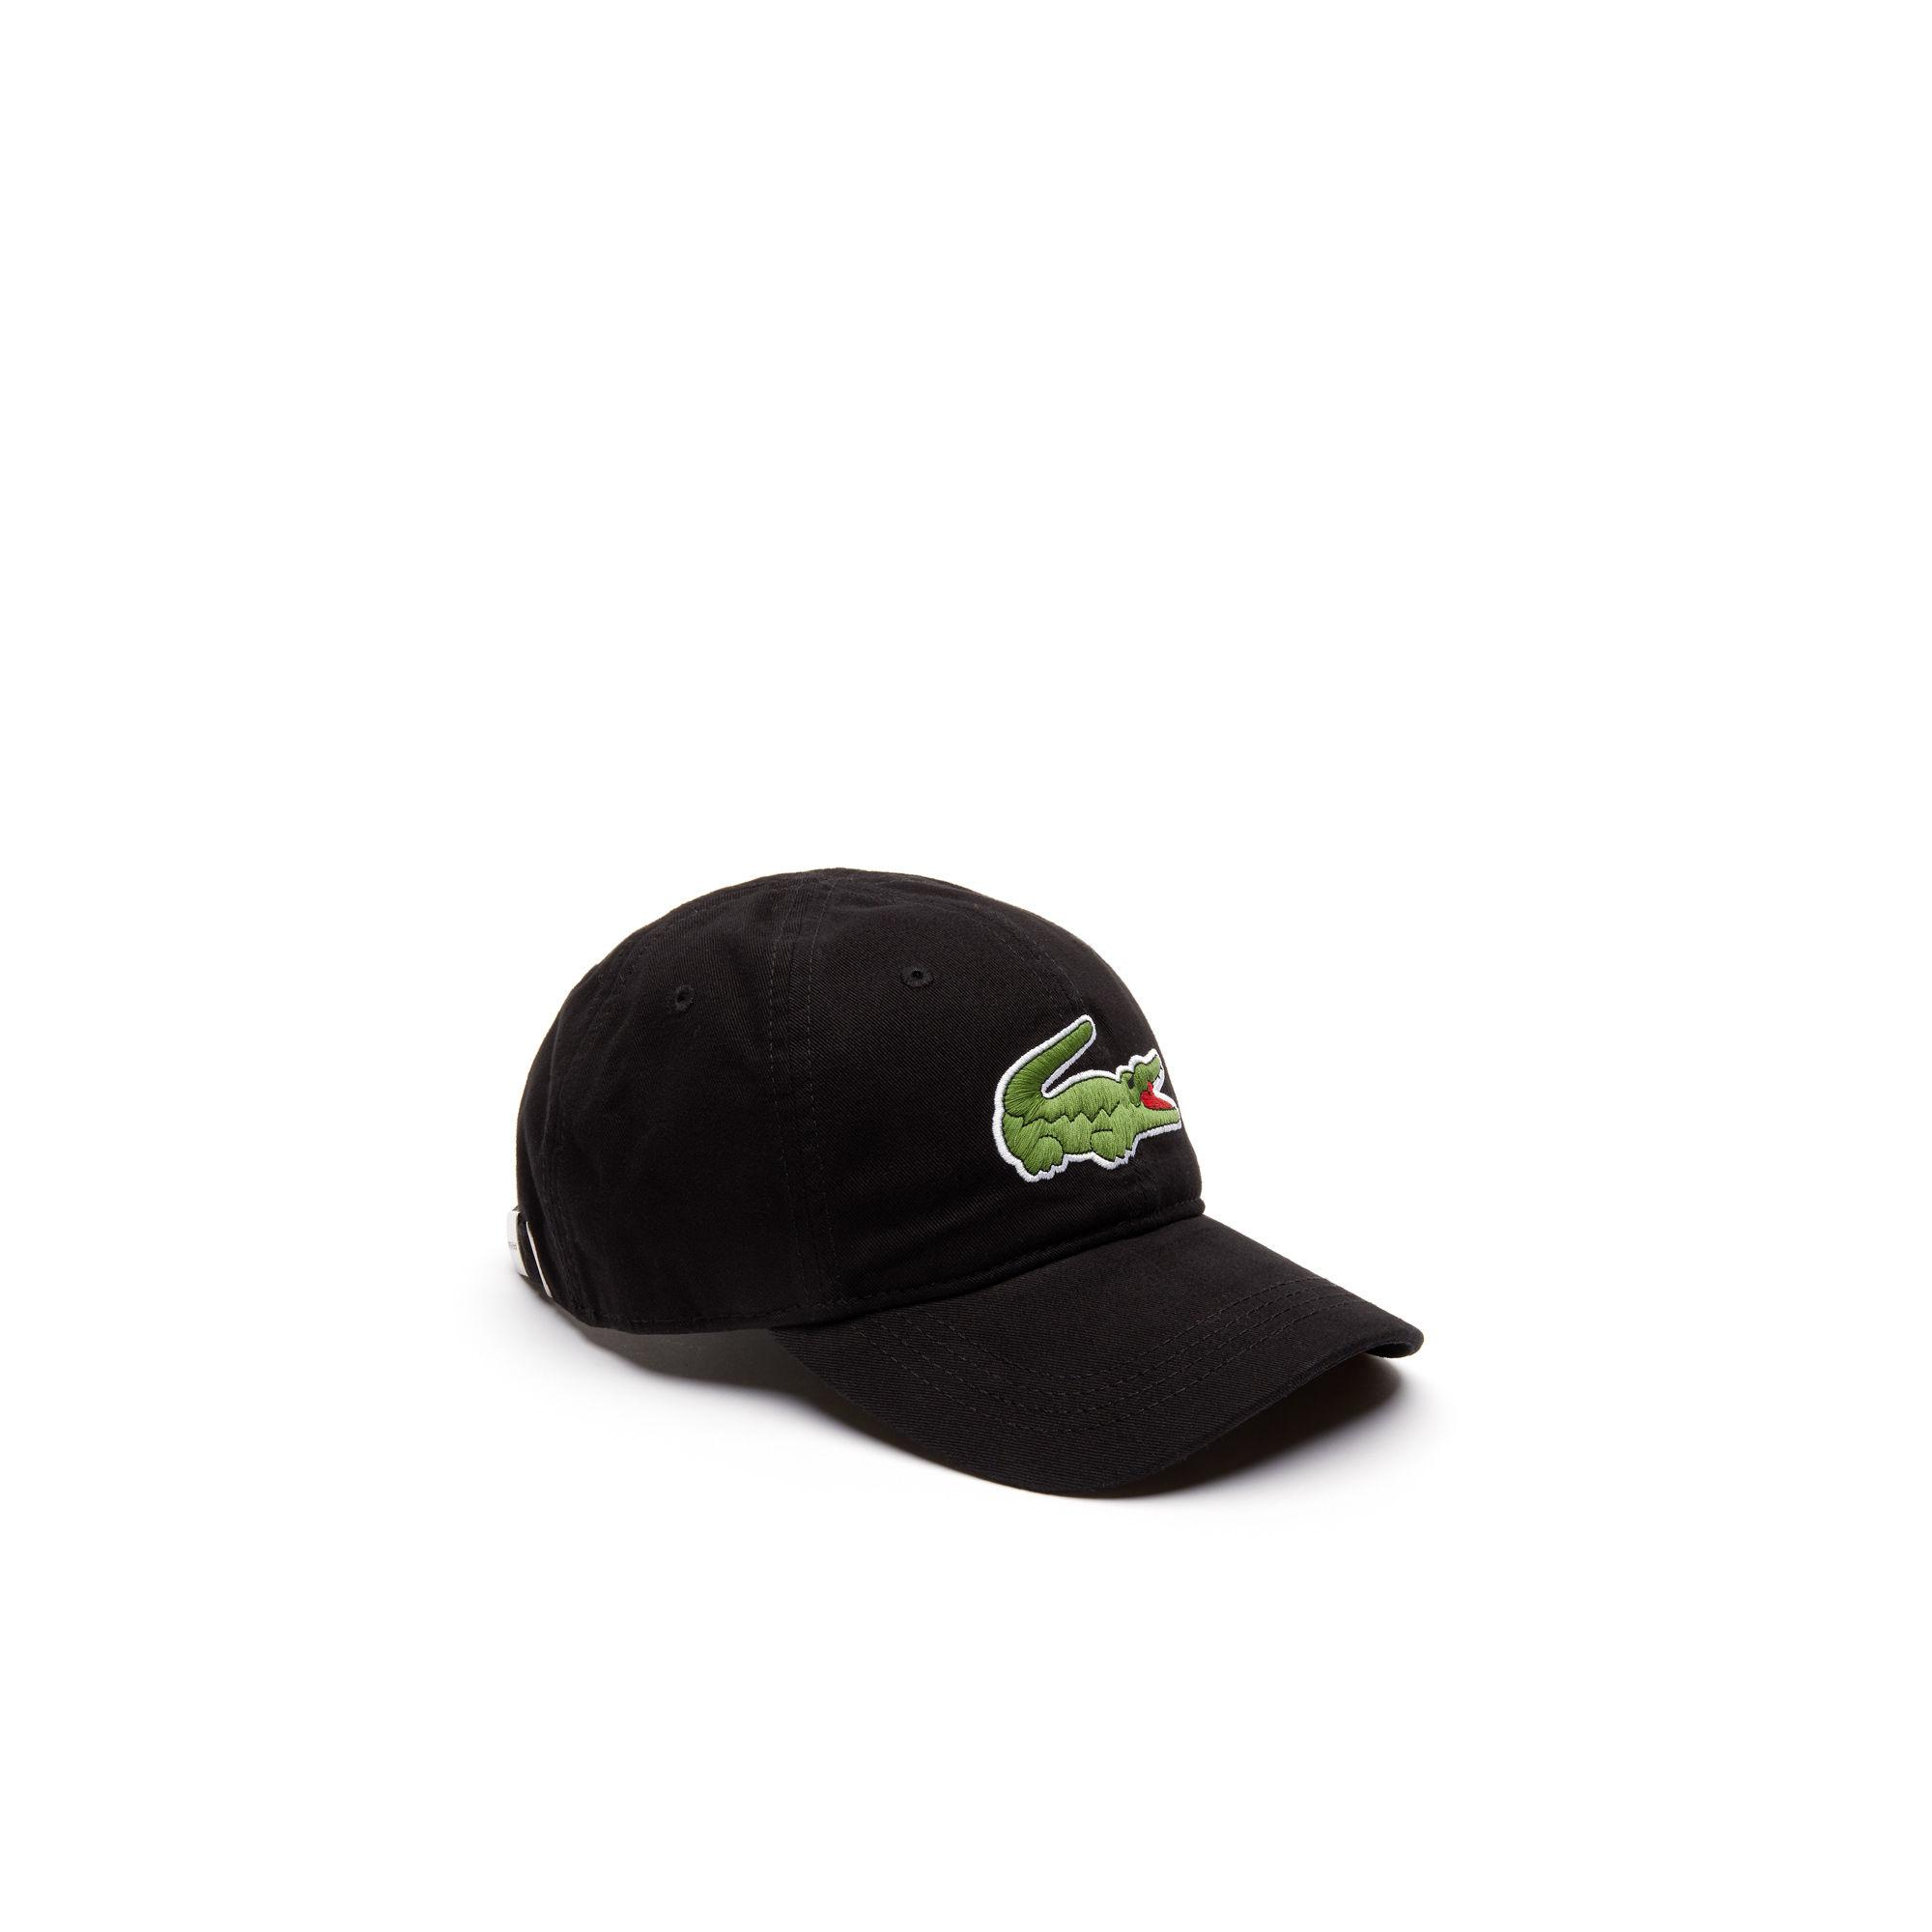 e3e7c0c2b26 Lyst - Lacoste Big Croc Gabardine Cap in Black for Men